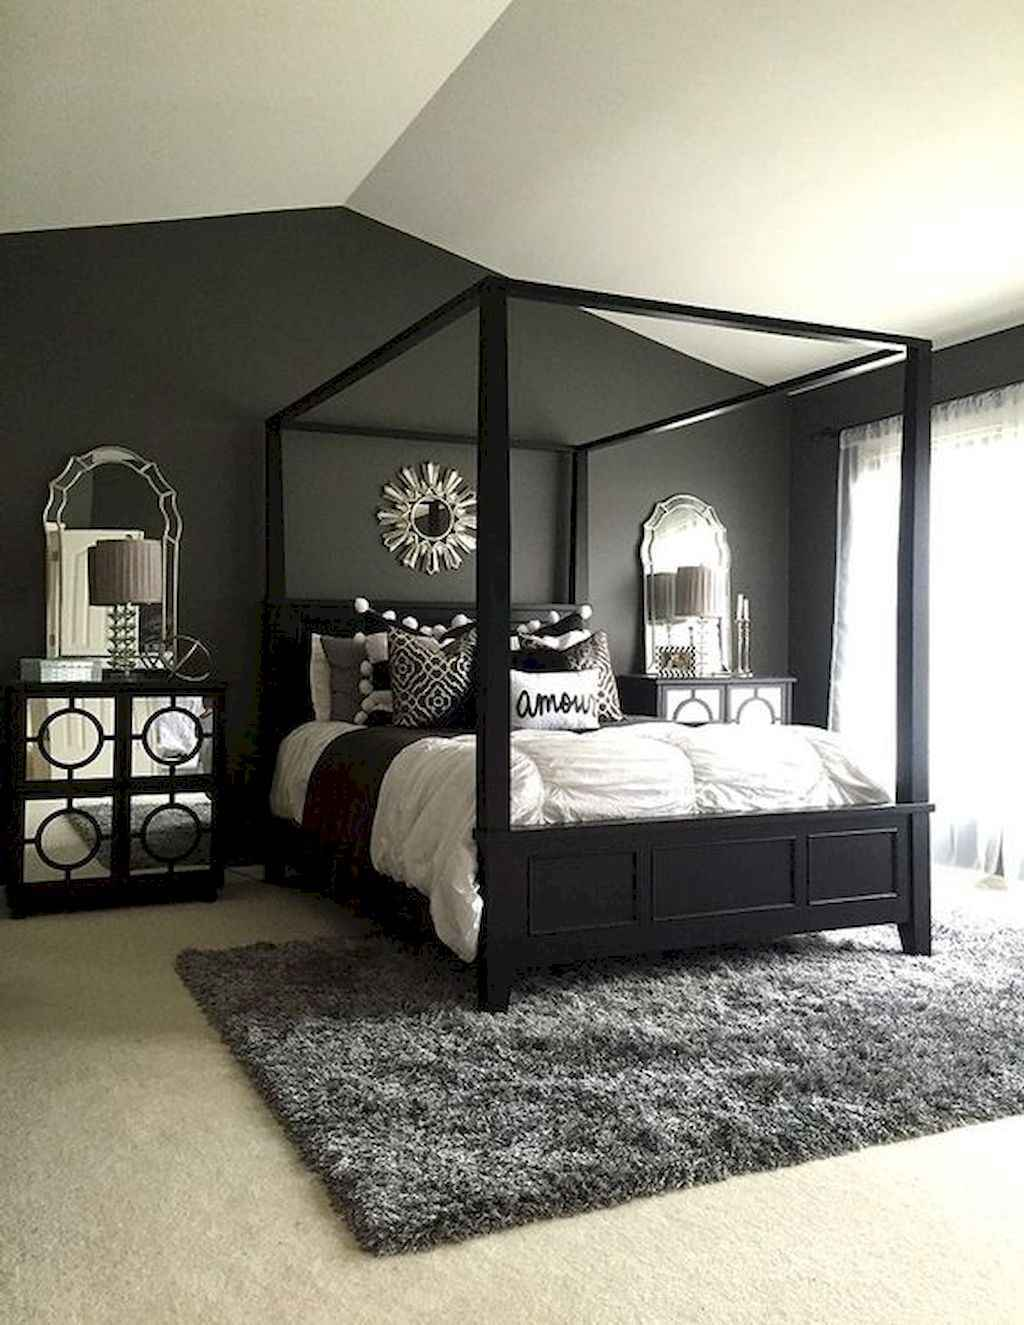 Simply bedroom decoration ideas (24)